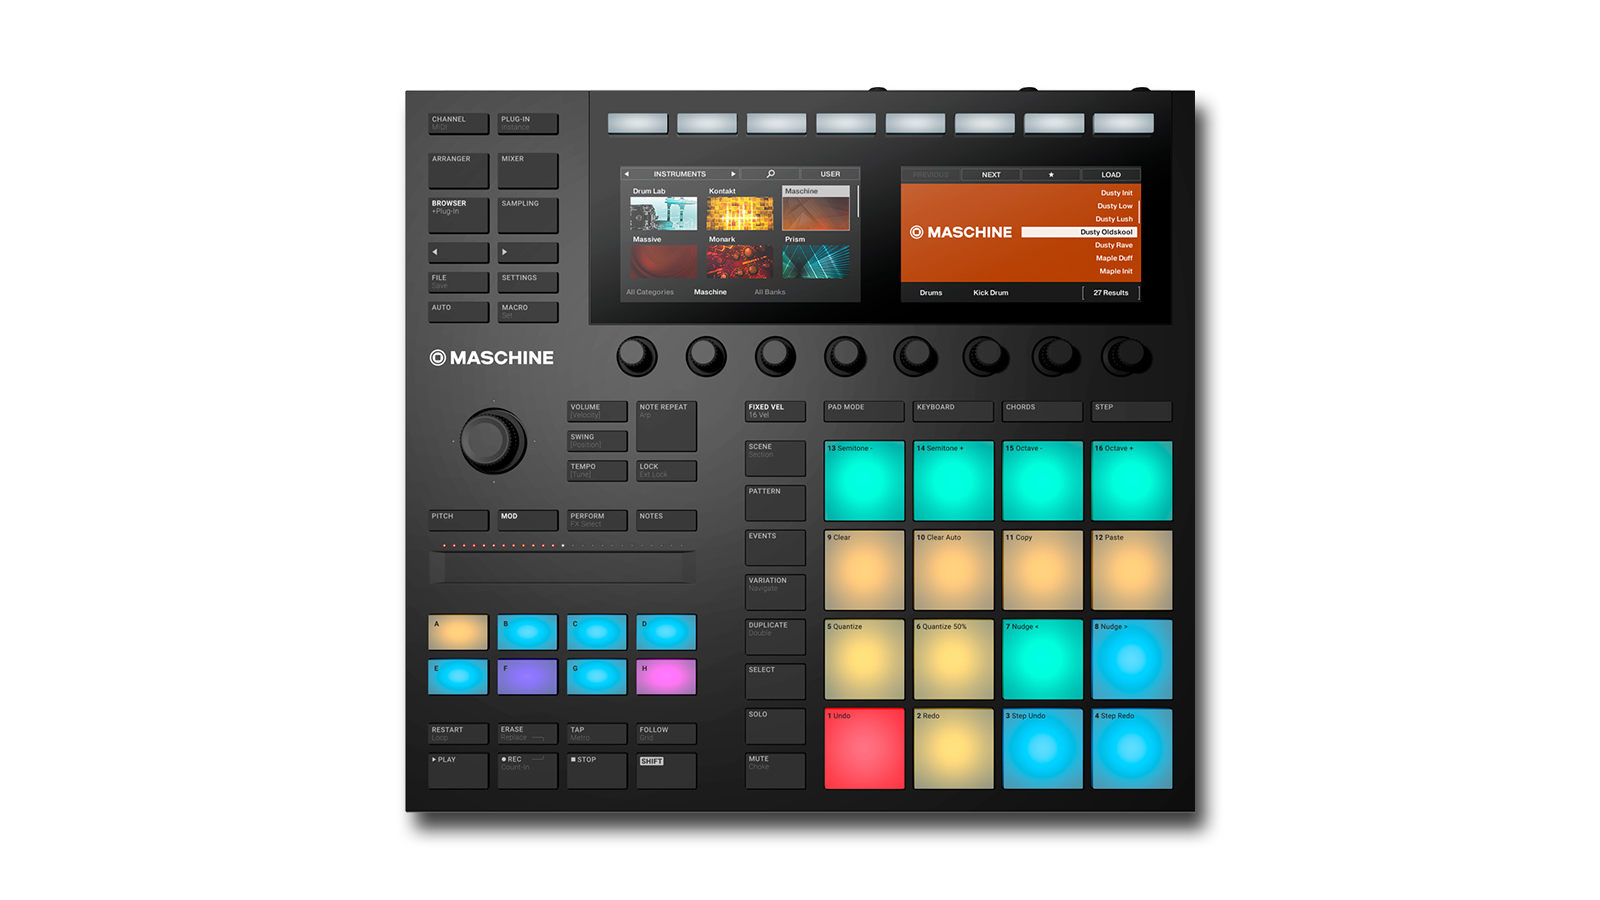 Best Maschine 2019: Native Instruments' Maschine, Mikro, Studio and Jam hybrid MIDI controllers head to head | MusicRadar